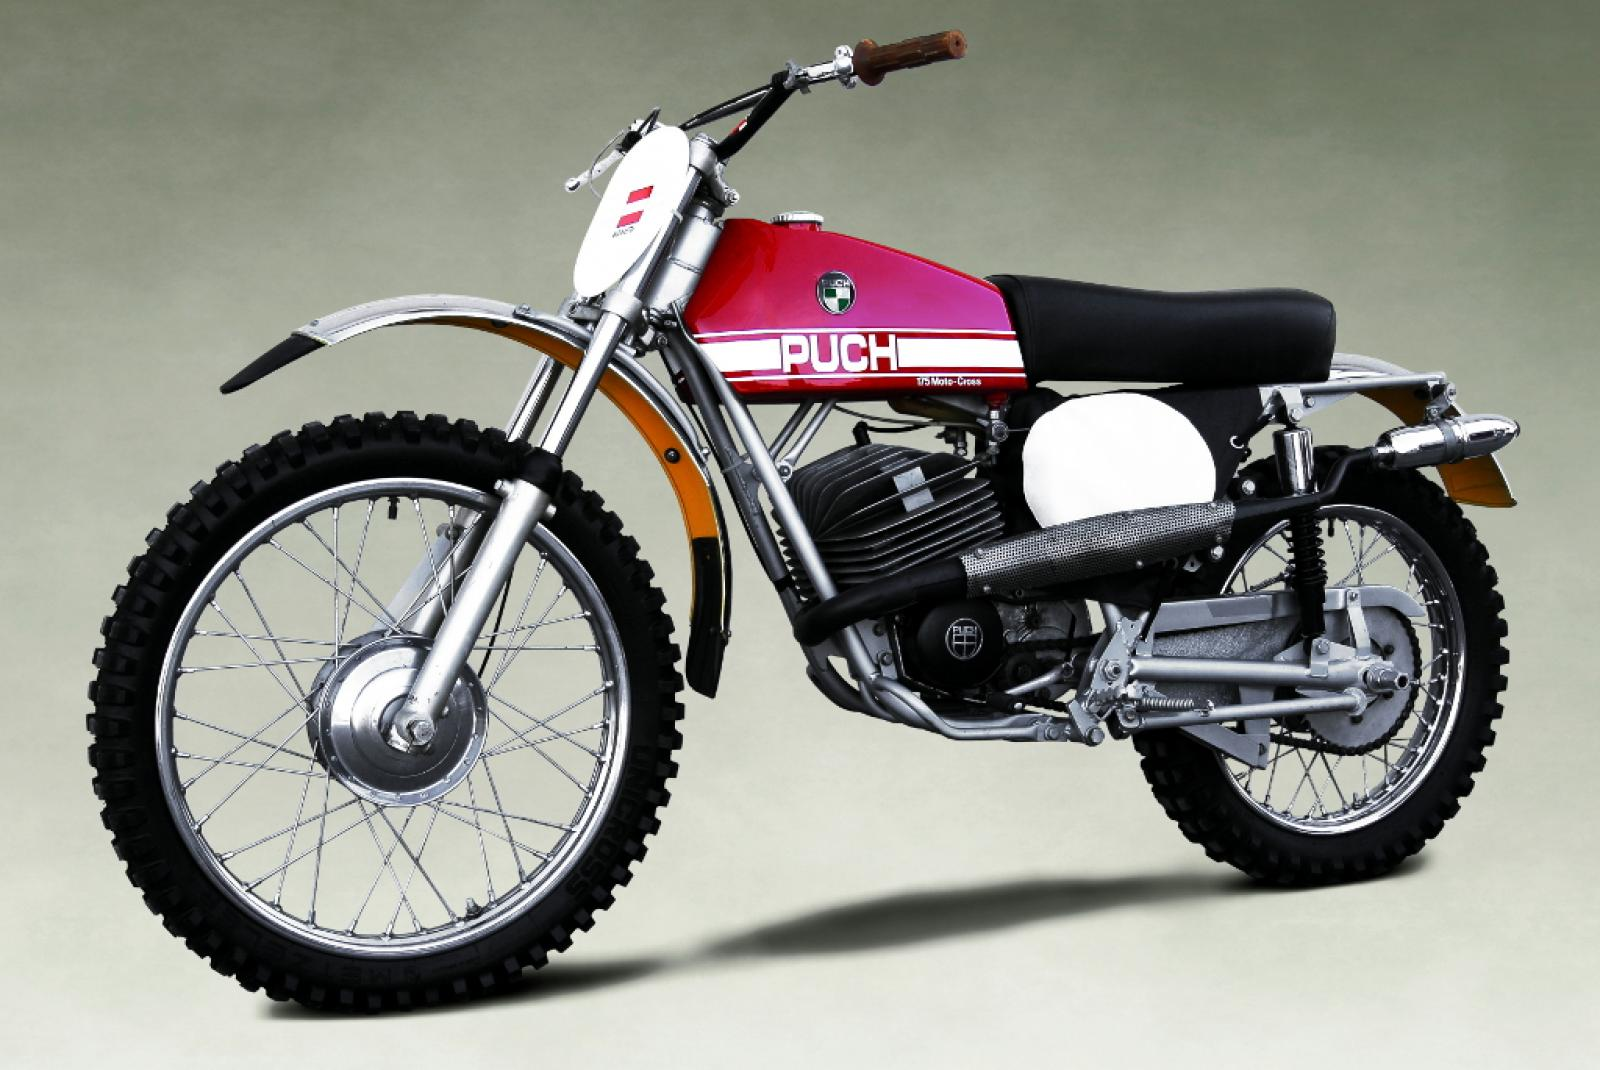 Puch GS 250 F 5 1985 images #121635